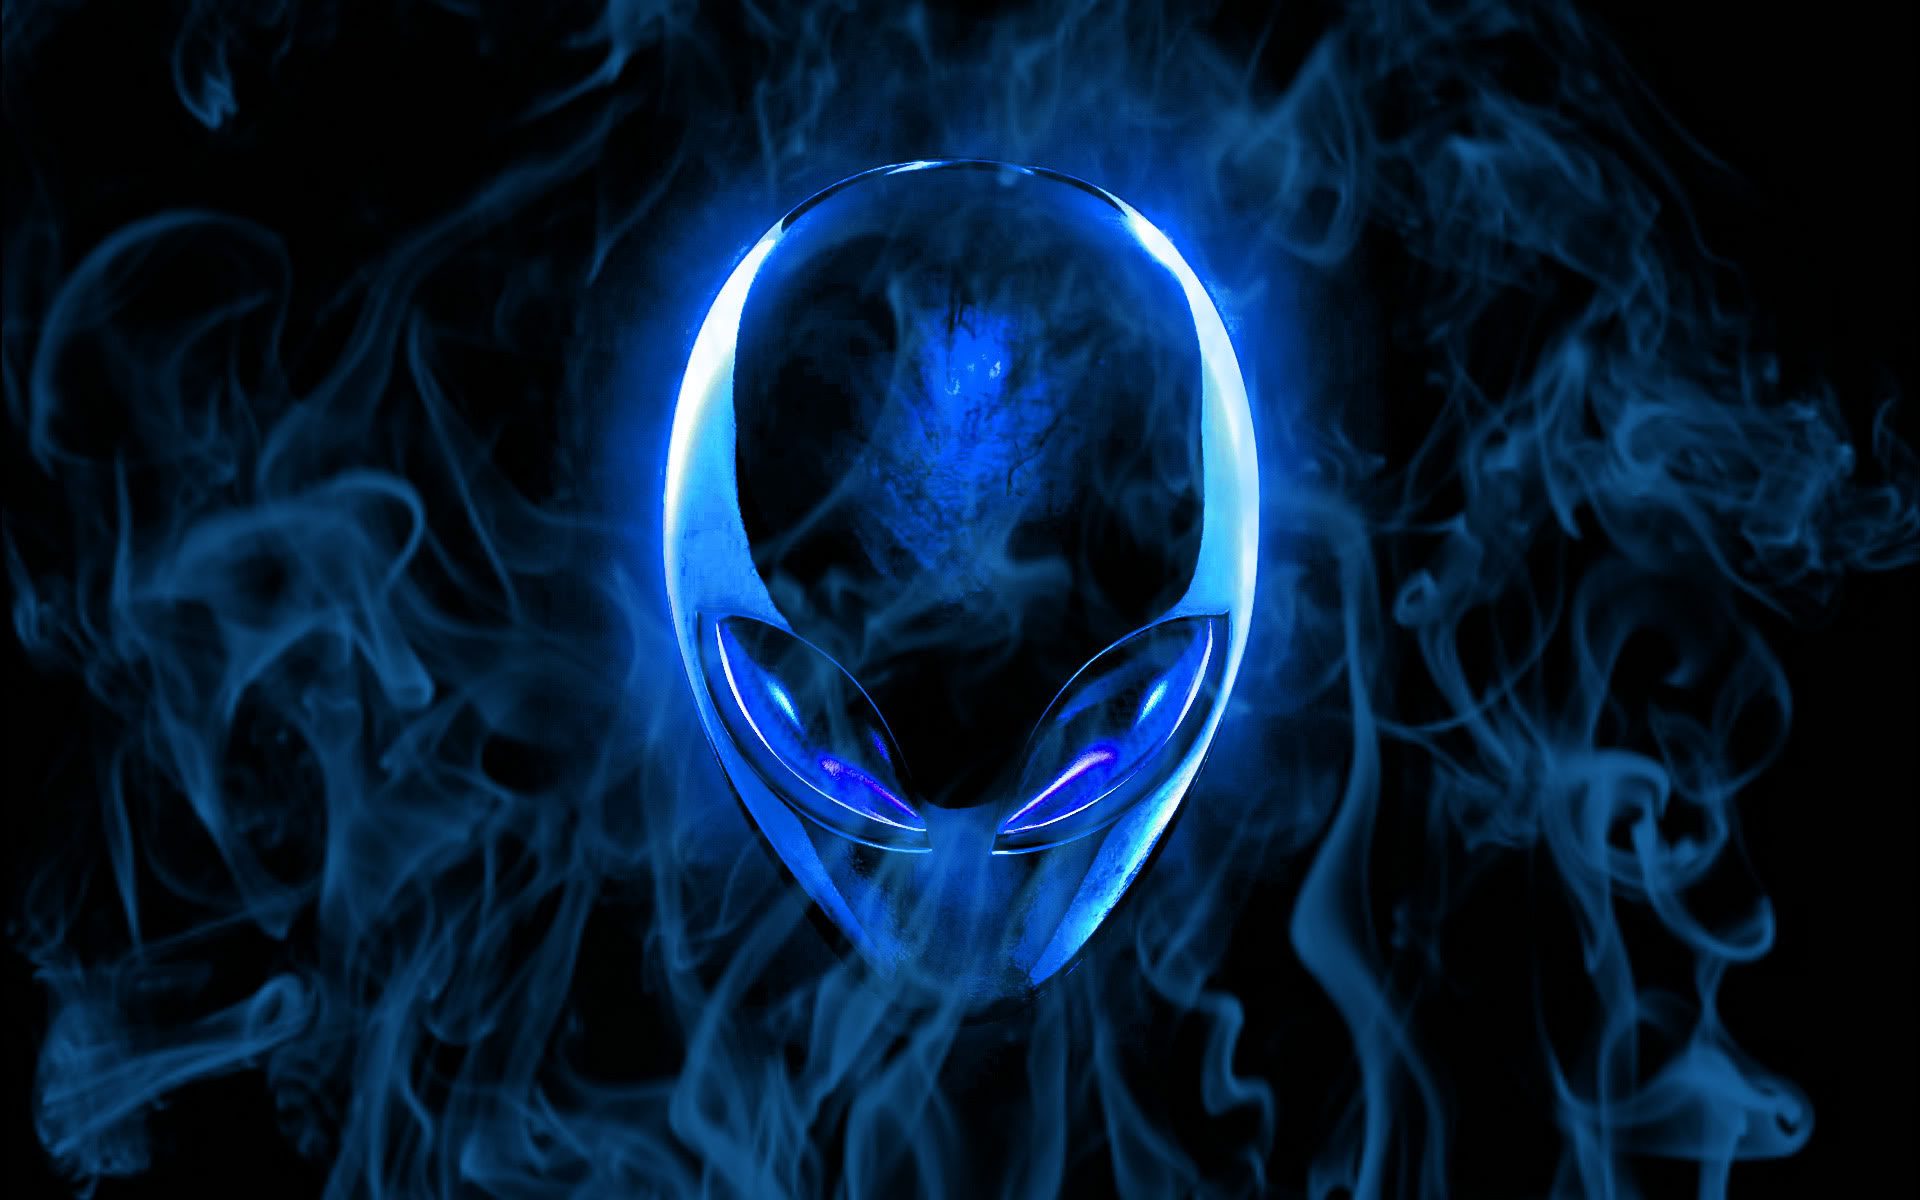 Alienware smoke